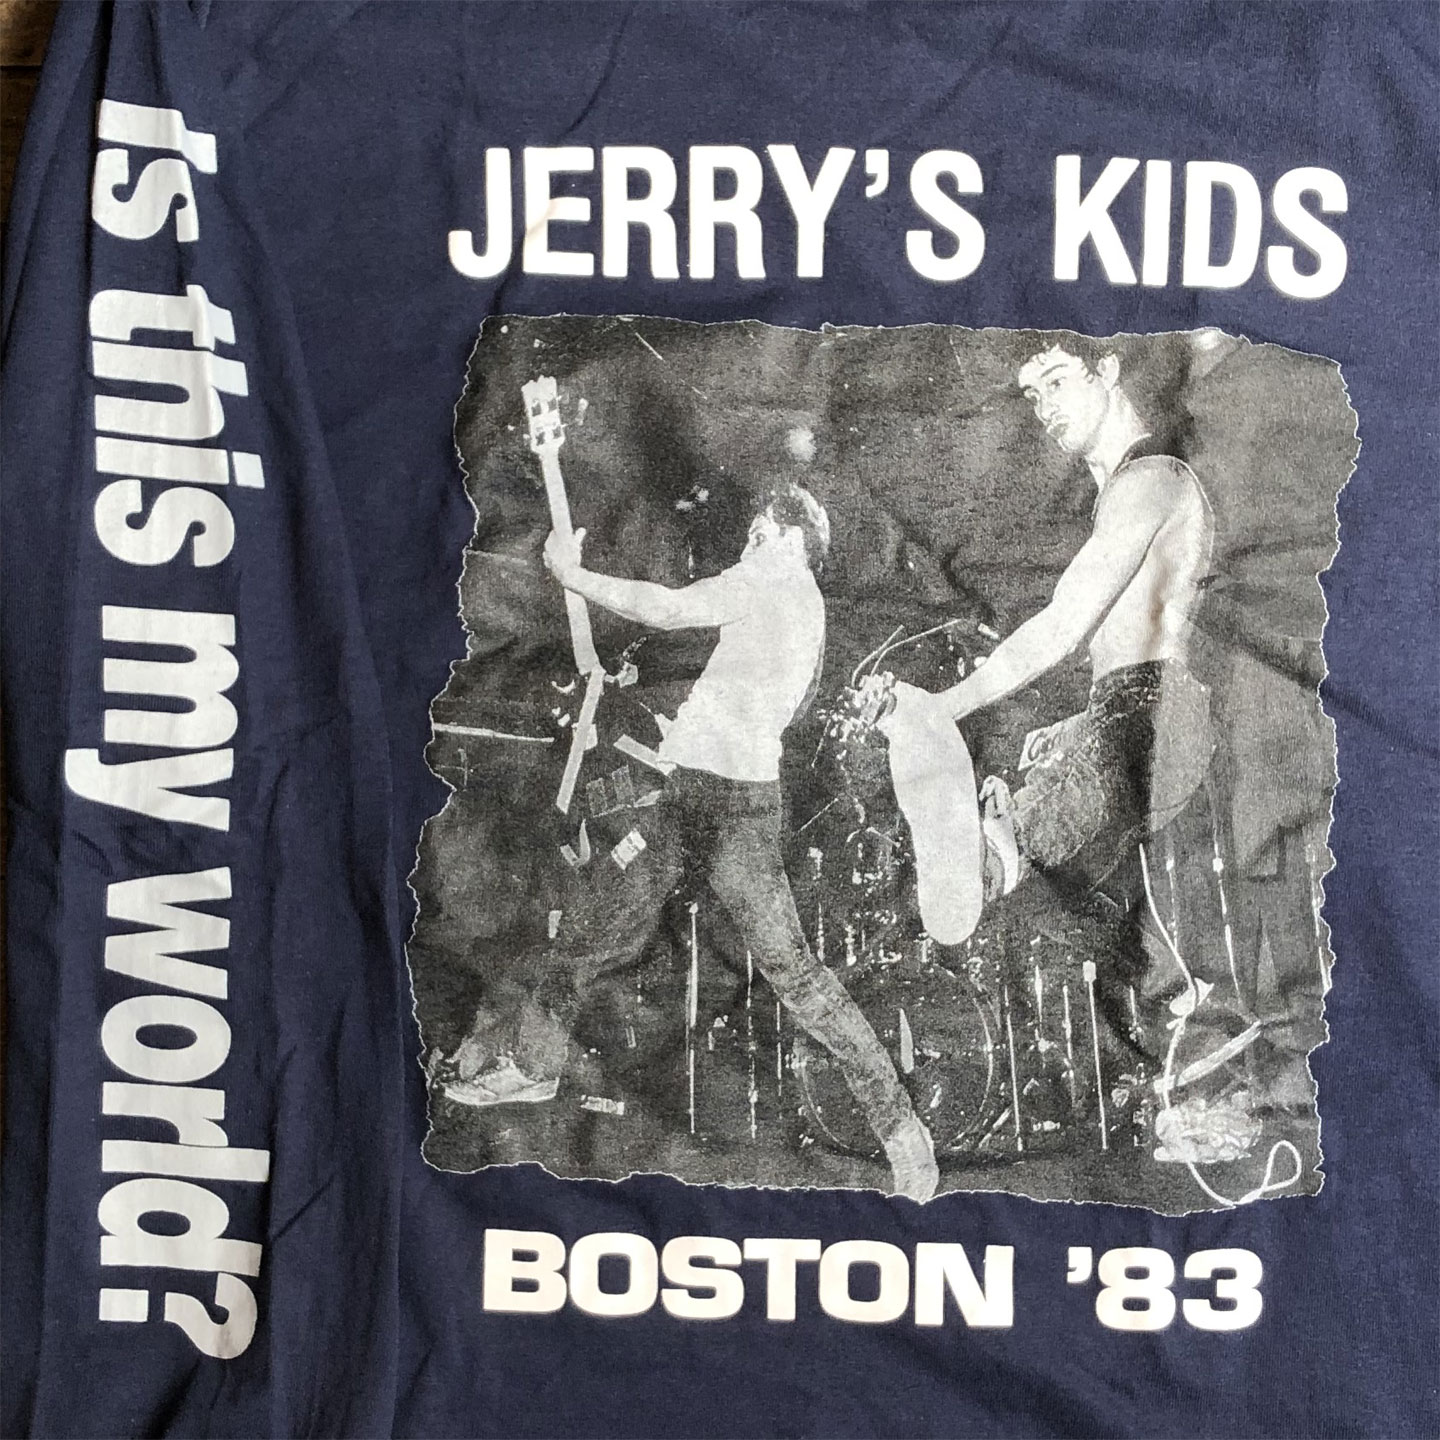 JERRY'S KIDS ロングスリーブTシャツ IS THIS MY WORLD?